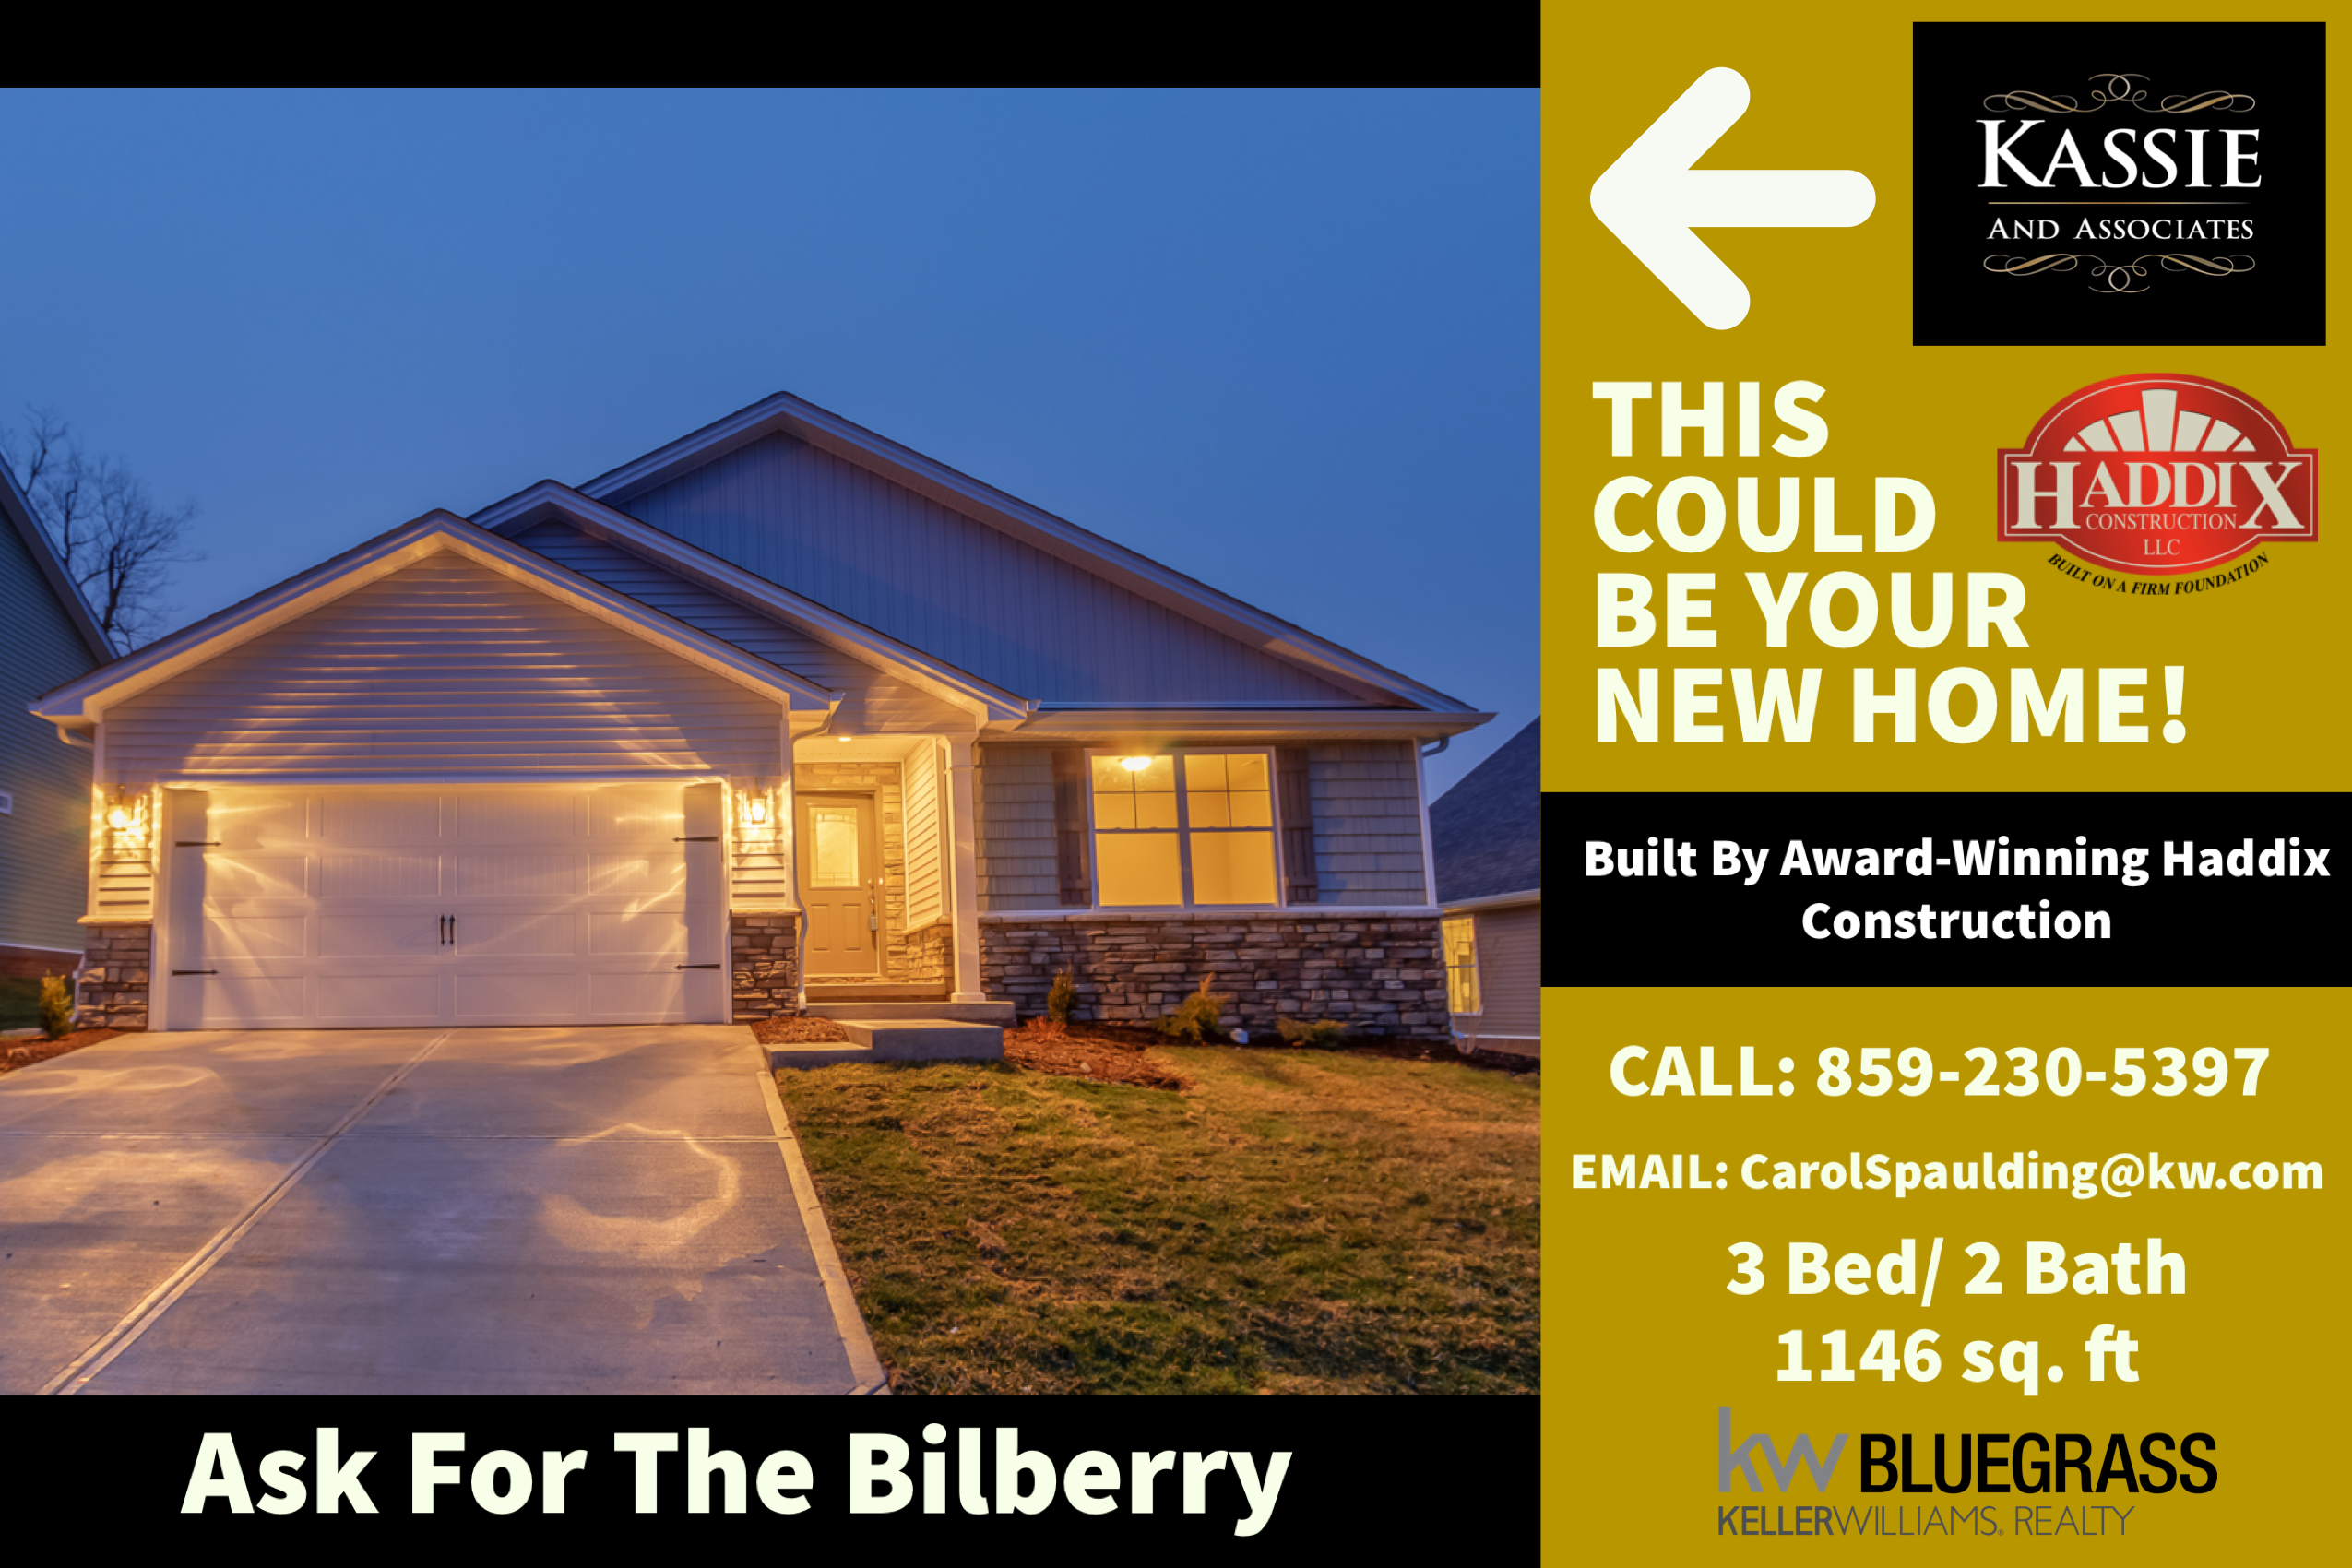 The Bilberry Could Be Your New Home This Is Just One Of The Many Plans That The Award Winning Haddix Construction New Homes Construction Real Estate Companies